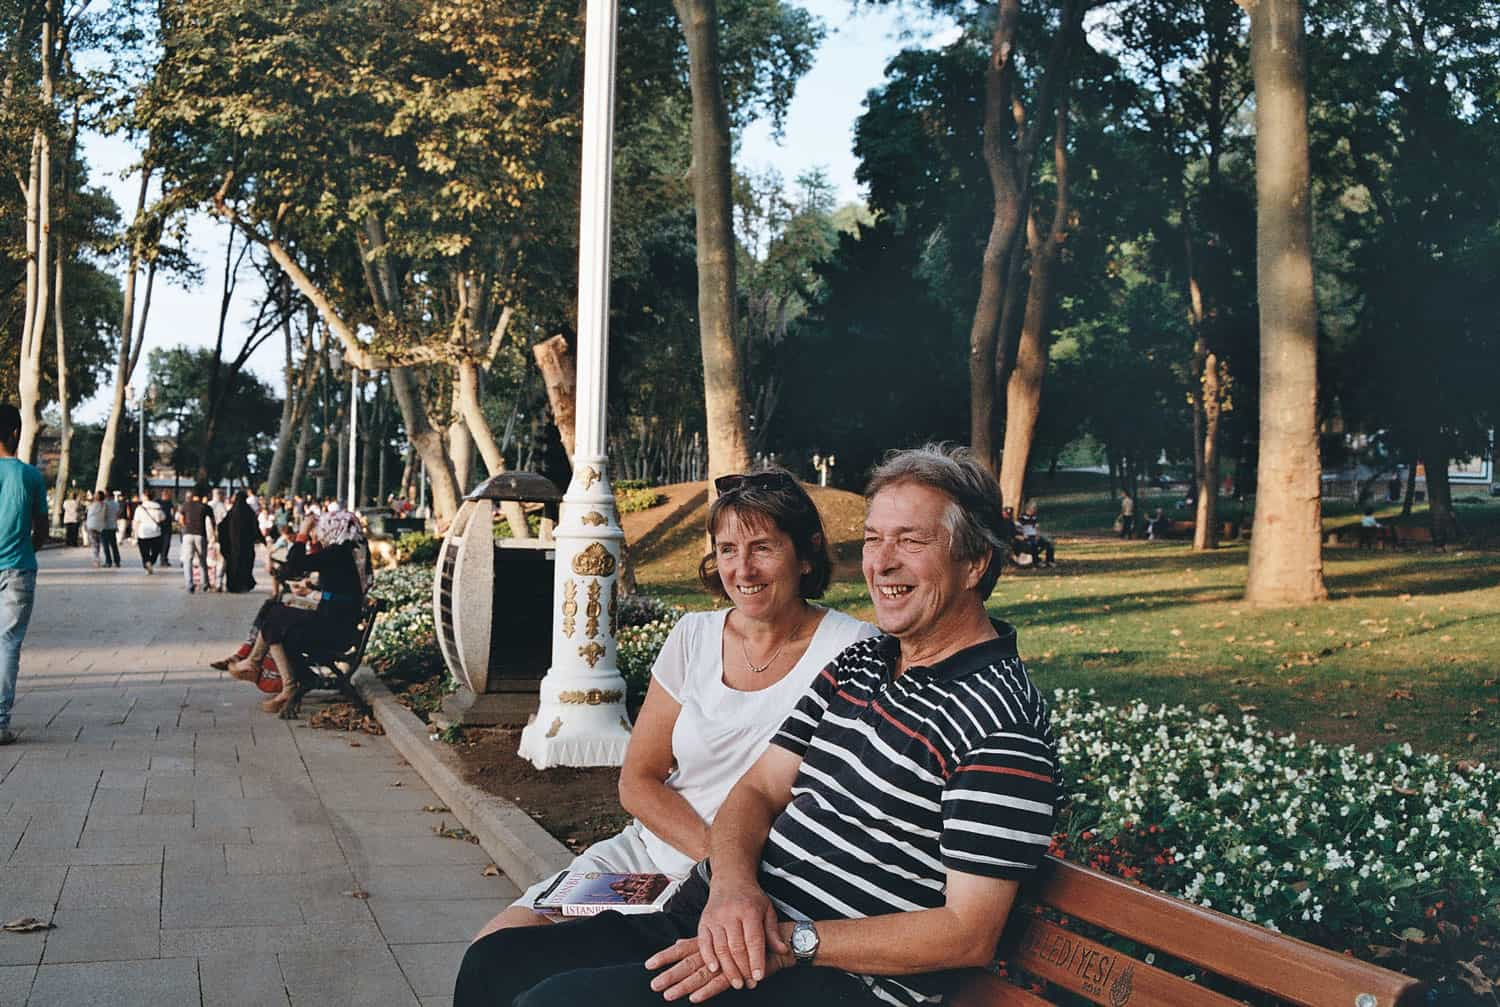 Parents in Istanbul by Charlotte Emms